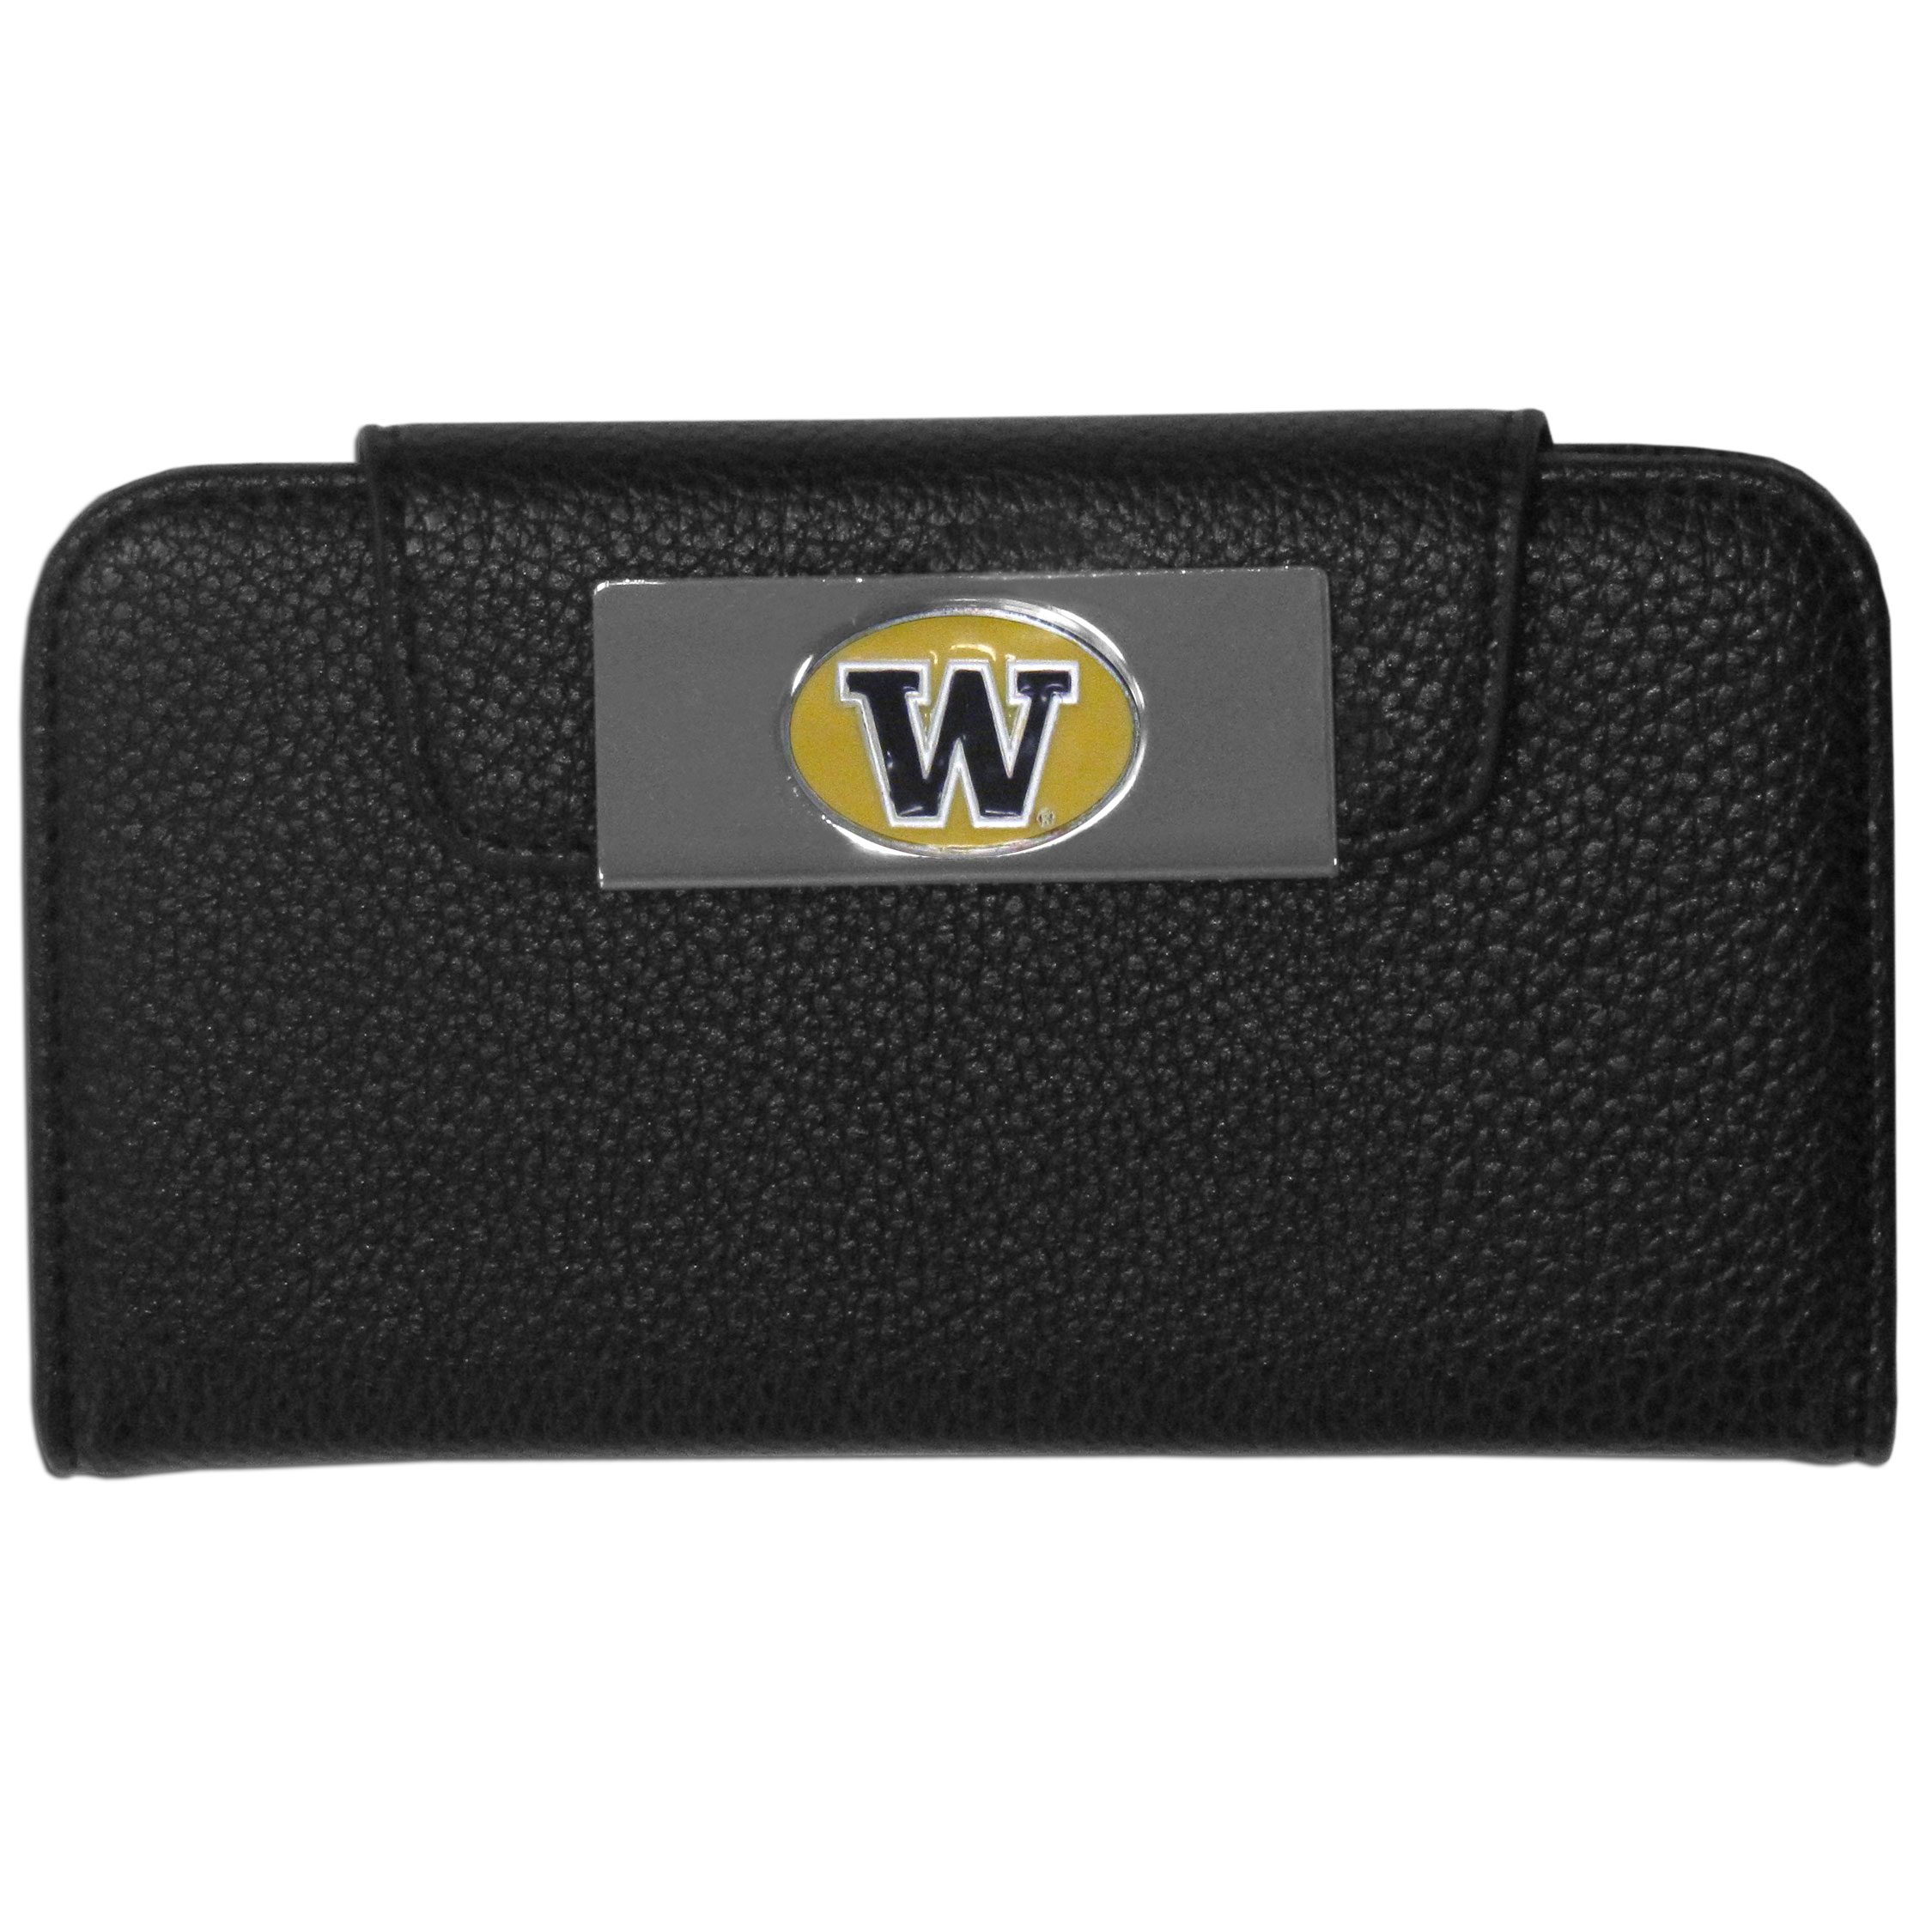 Washington Huskies iPhone 5/5S Wallet Case - This new & wildly popular case is ideal for those who like to travel light! The stylish case has an inner hard shell that securely holds your phone while allowing complete access to the phone's functionality. The flip cover has slots for credit cards, business cards and identification. The magnetic flip cover has a metal Washington Huskies emblem on a high polish chrome backing. Fits the iPhone 5/5S